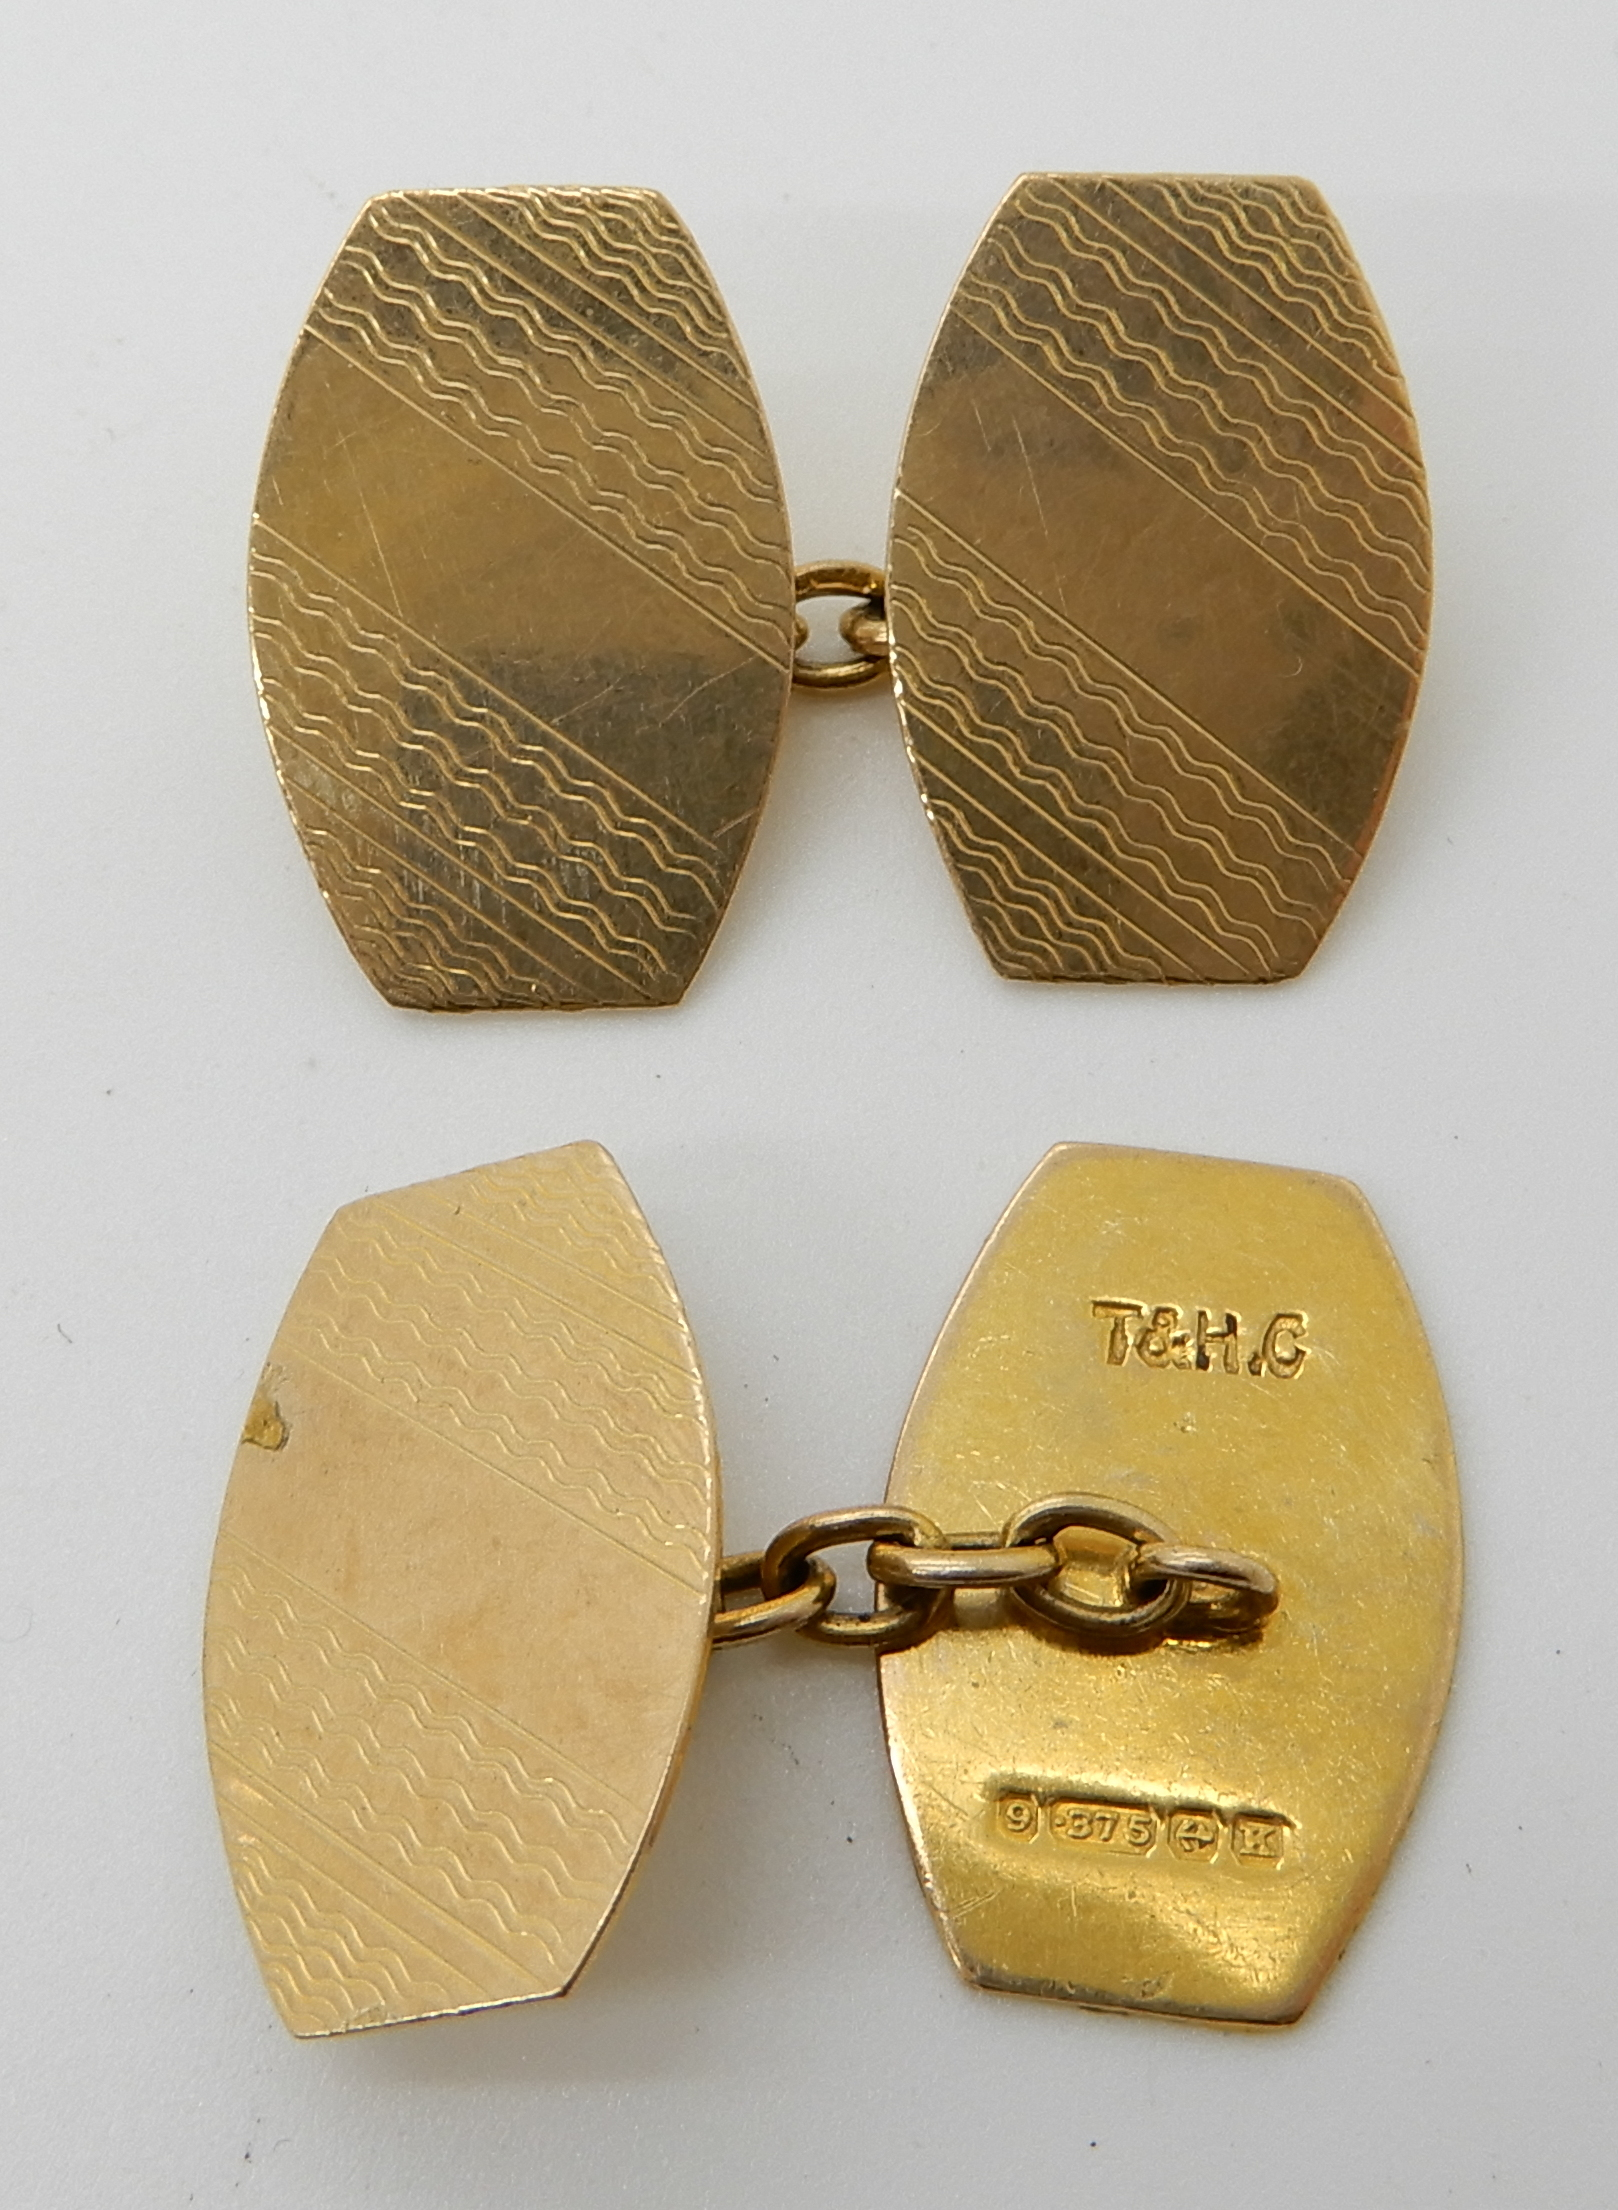 Lot 59 - A pair of 9ct gold engine turned cufflinks, weight 5.1gms Condition Report: Available upon request